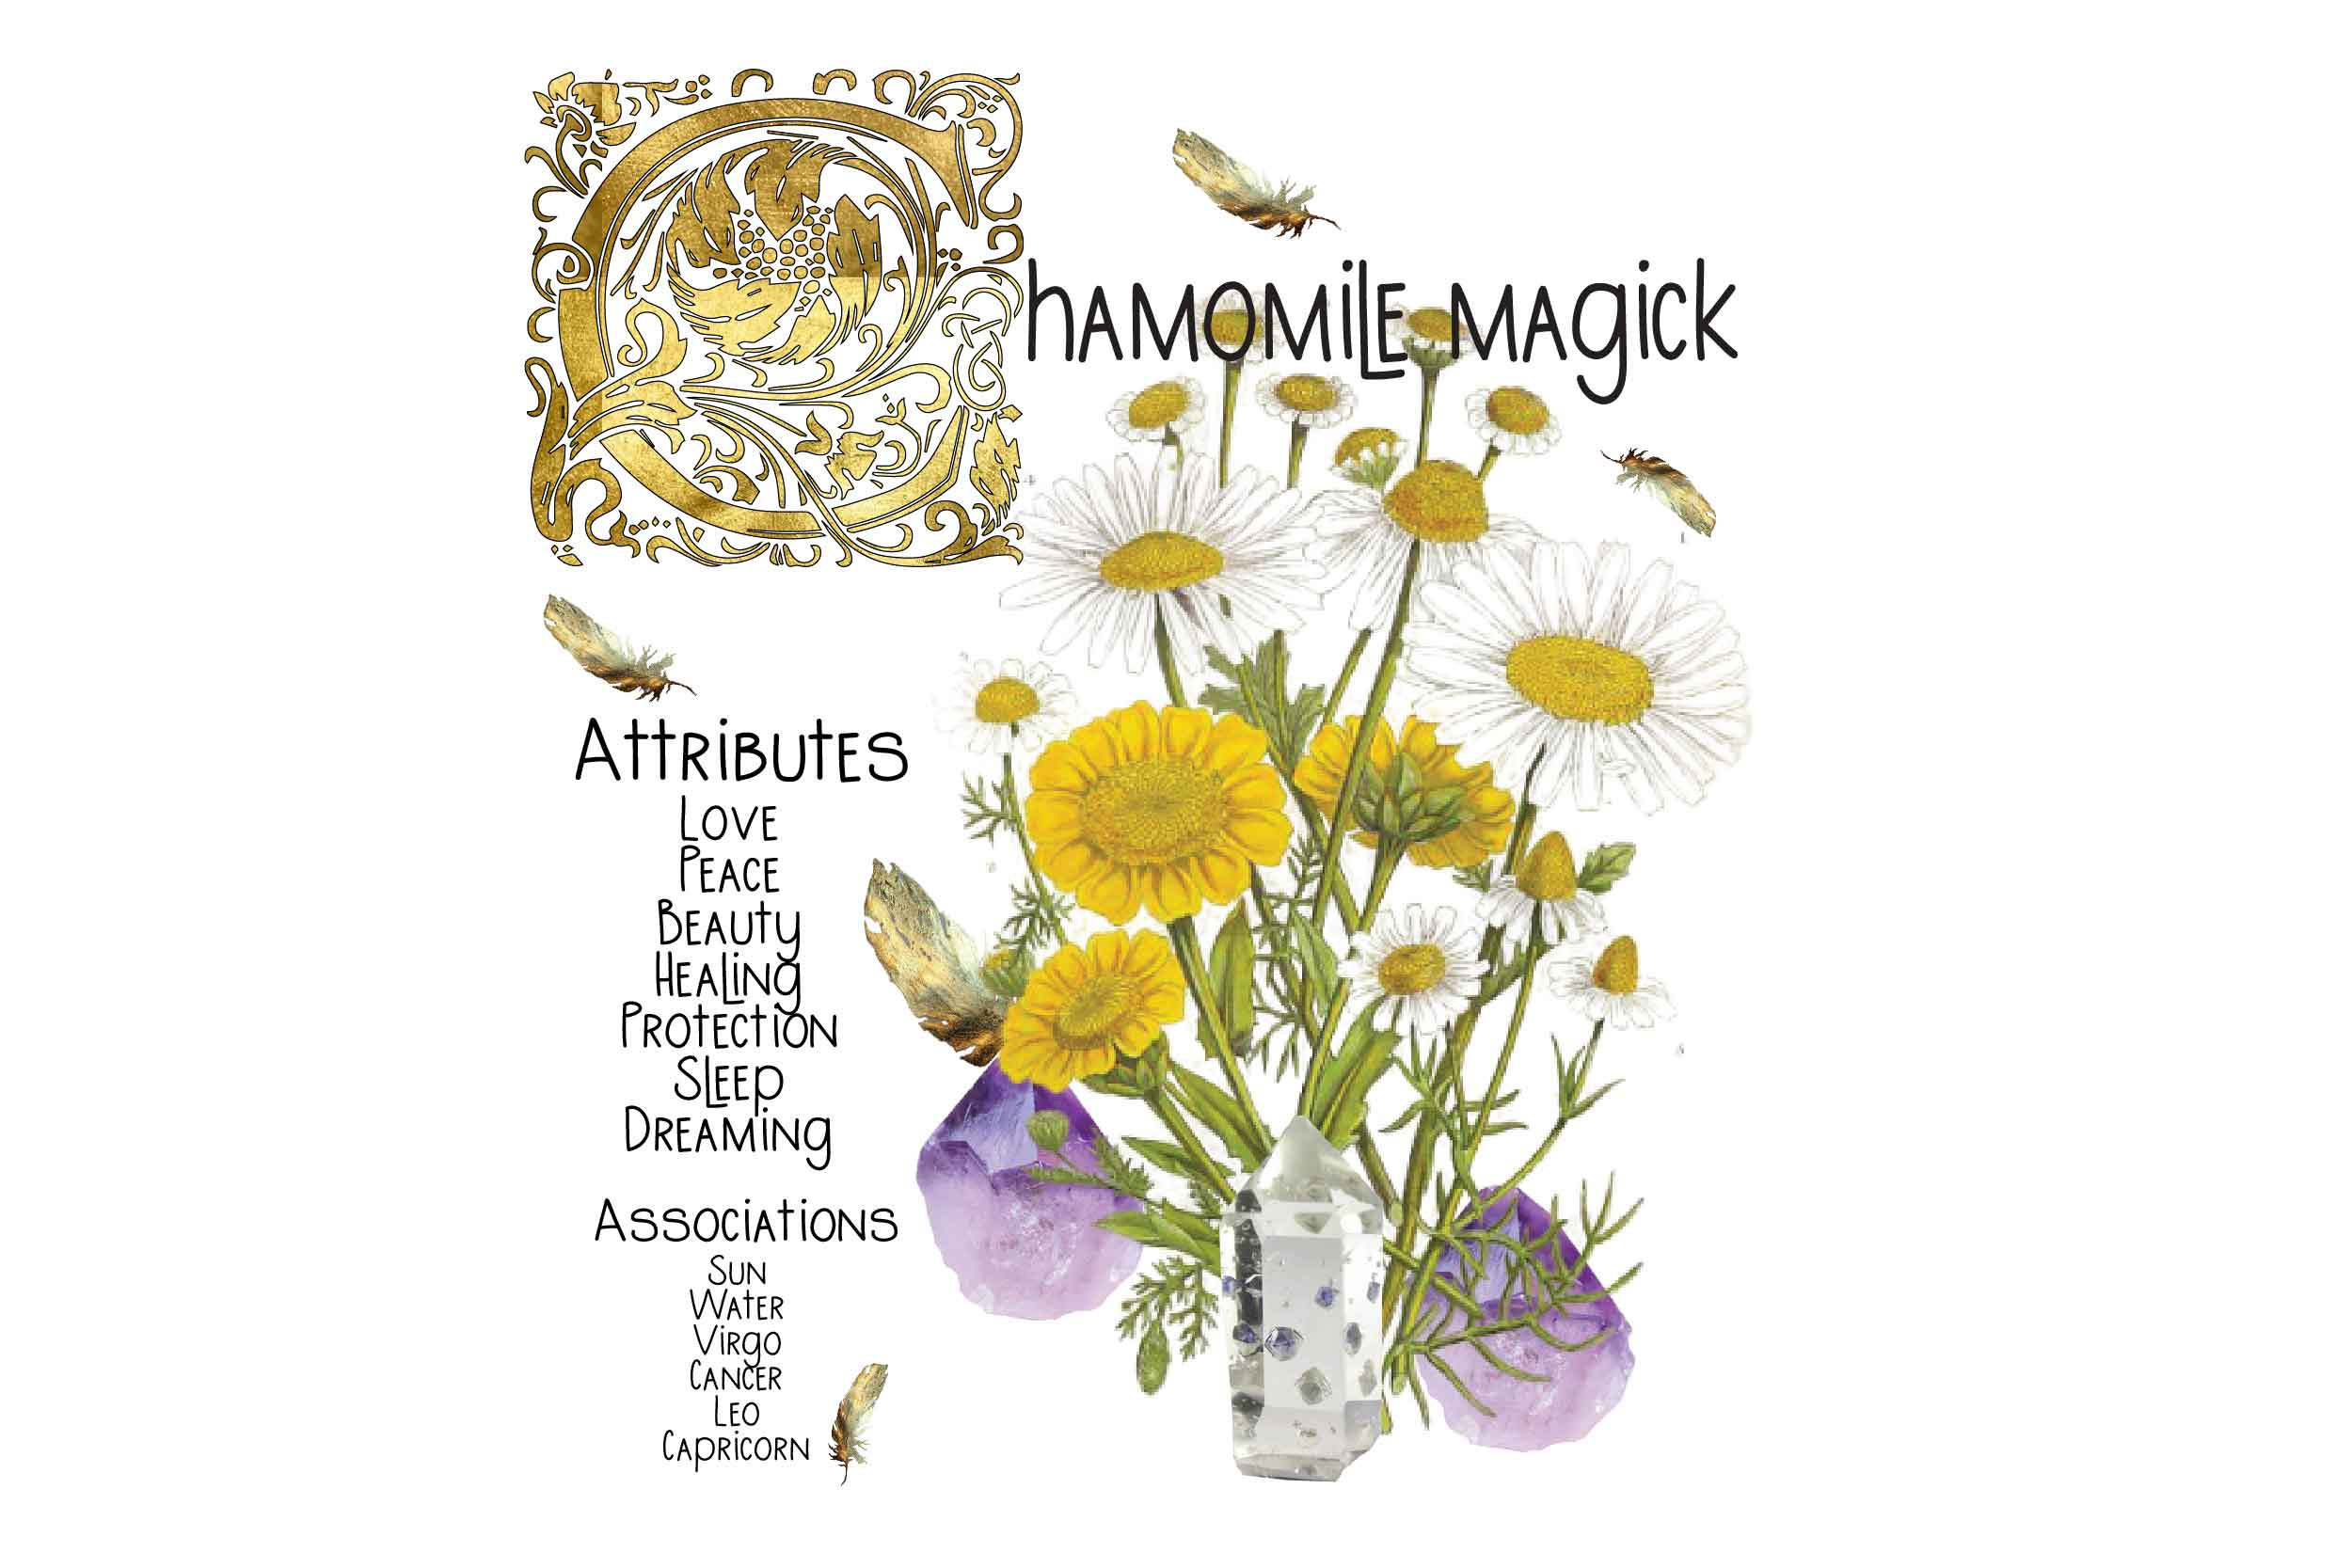 chamomile magickal benefits explained with pictures on white background